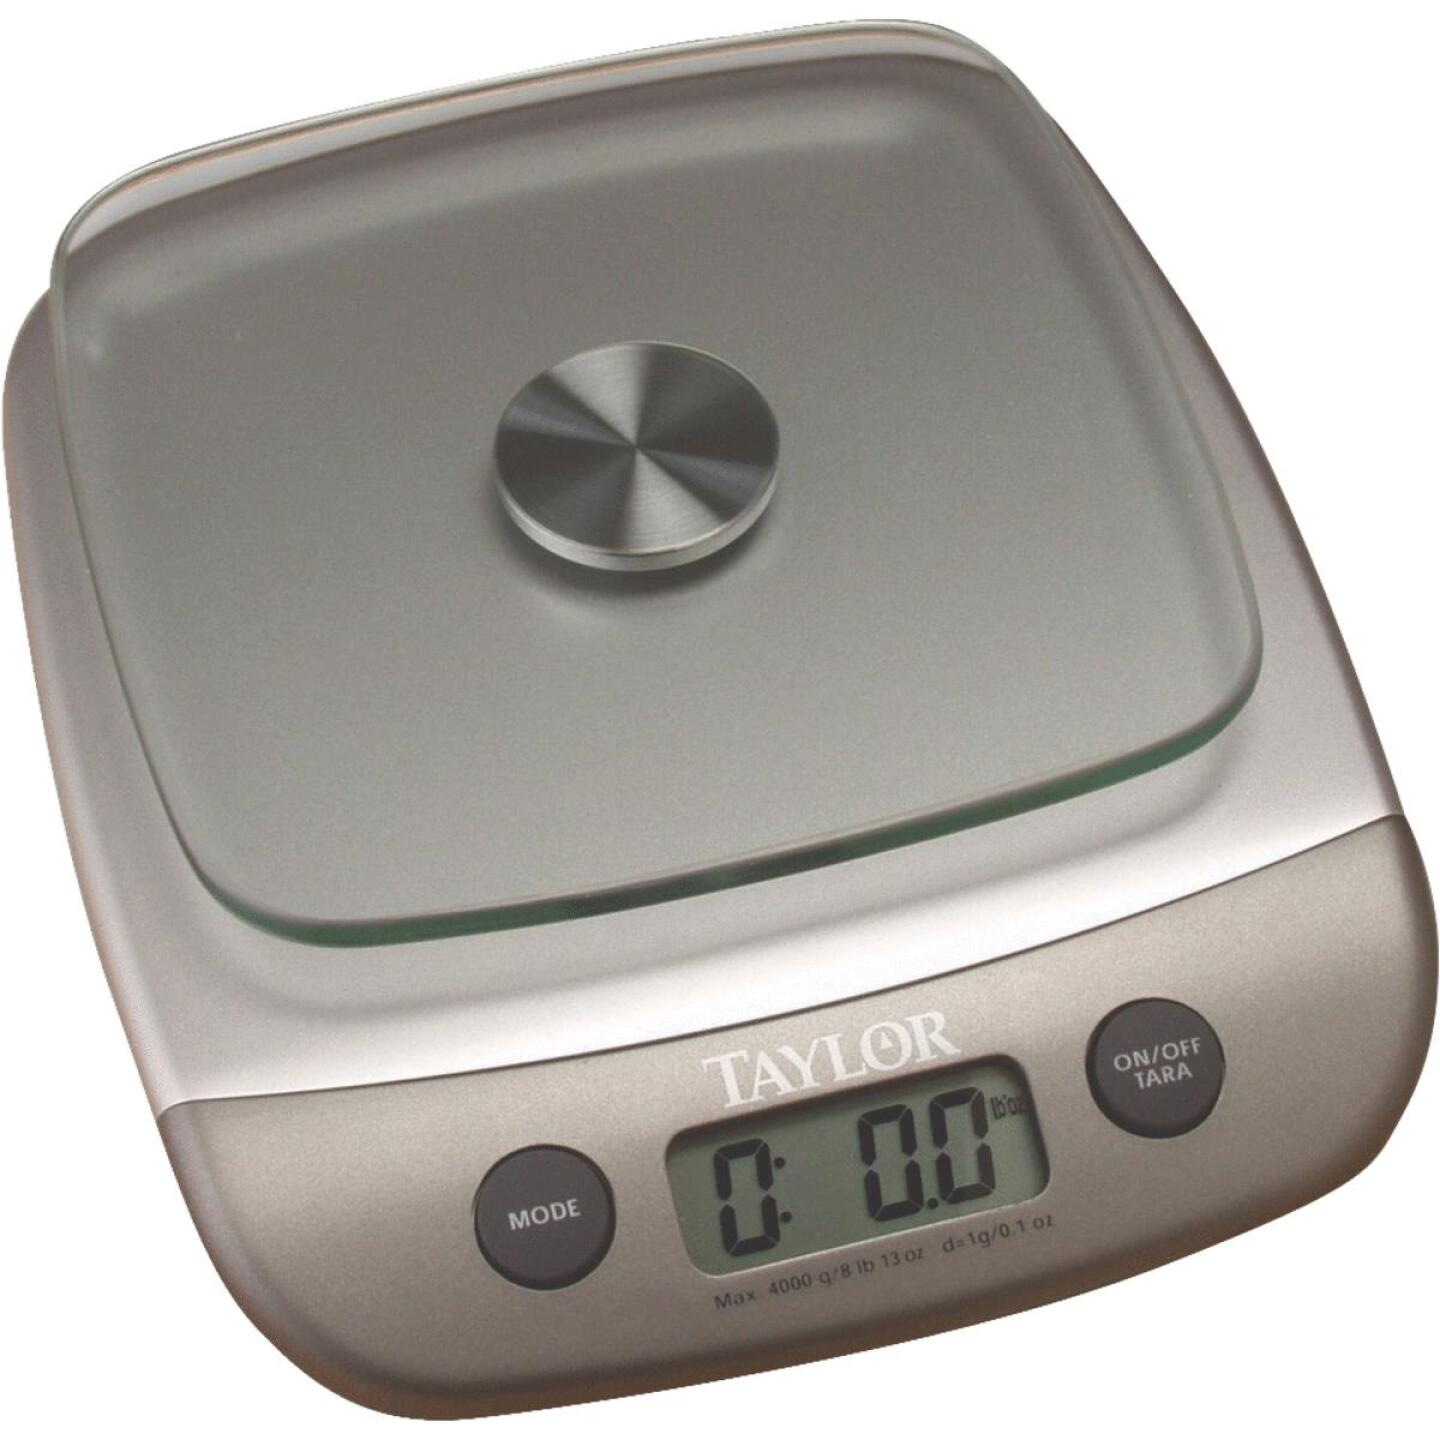 Taylor 8 Lb. Capacity Digital Food Scale Image 1